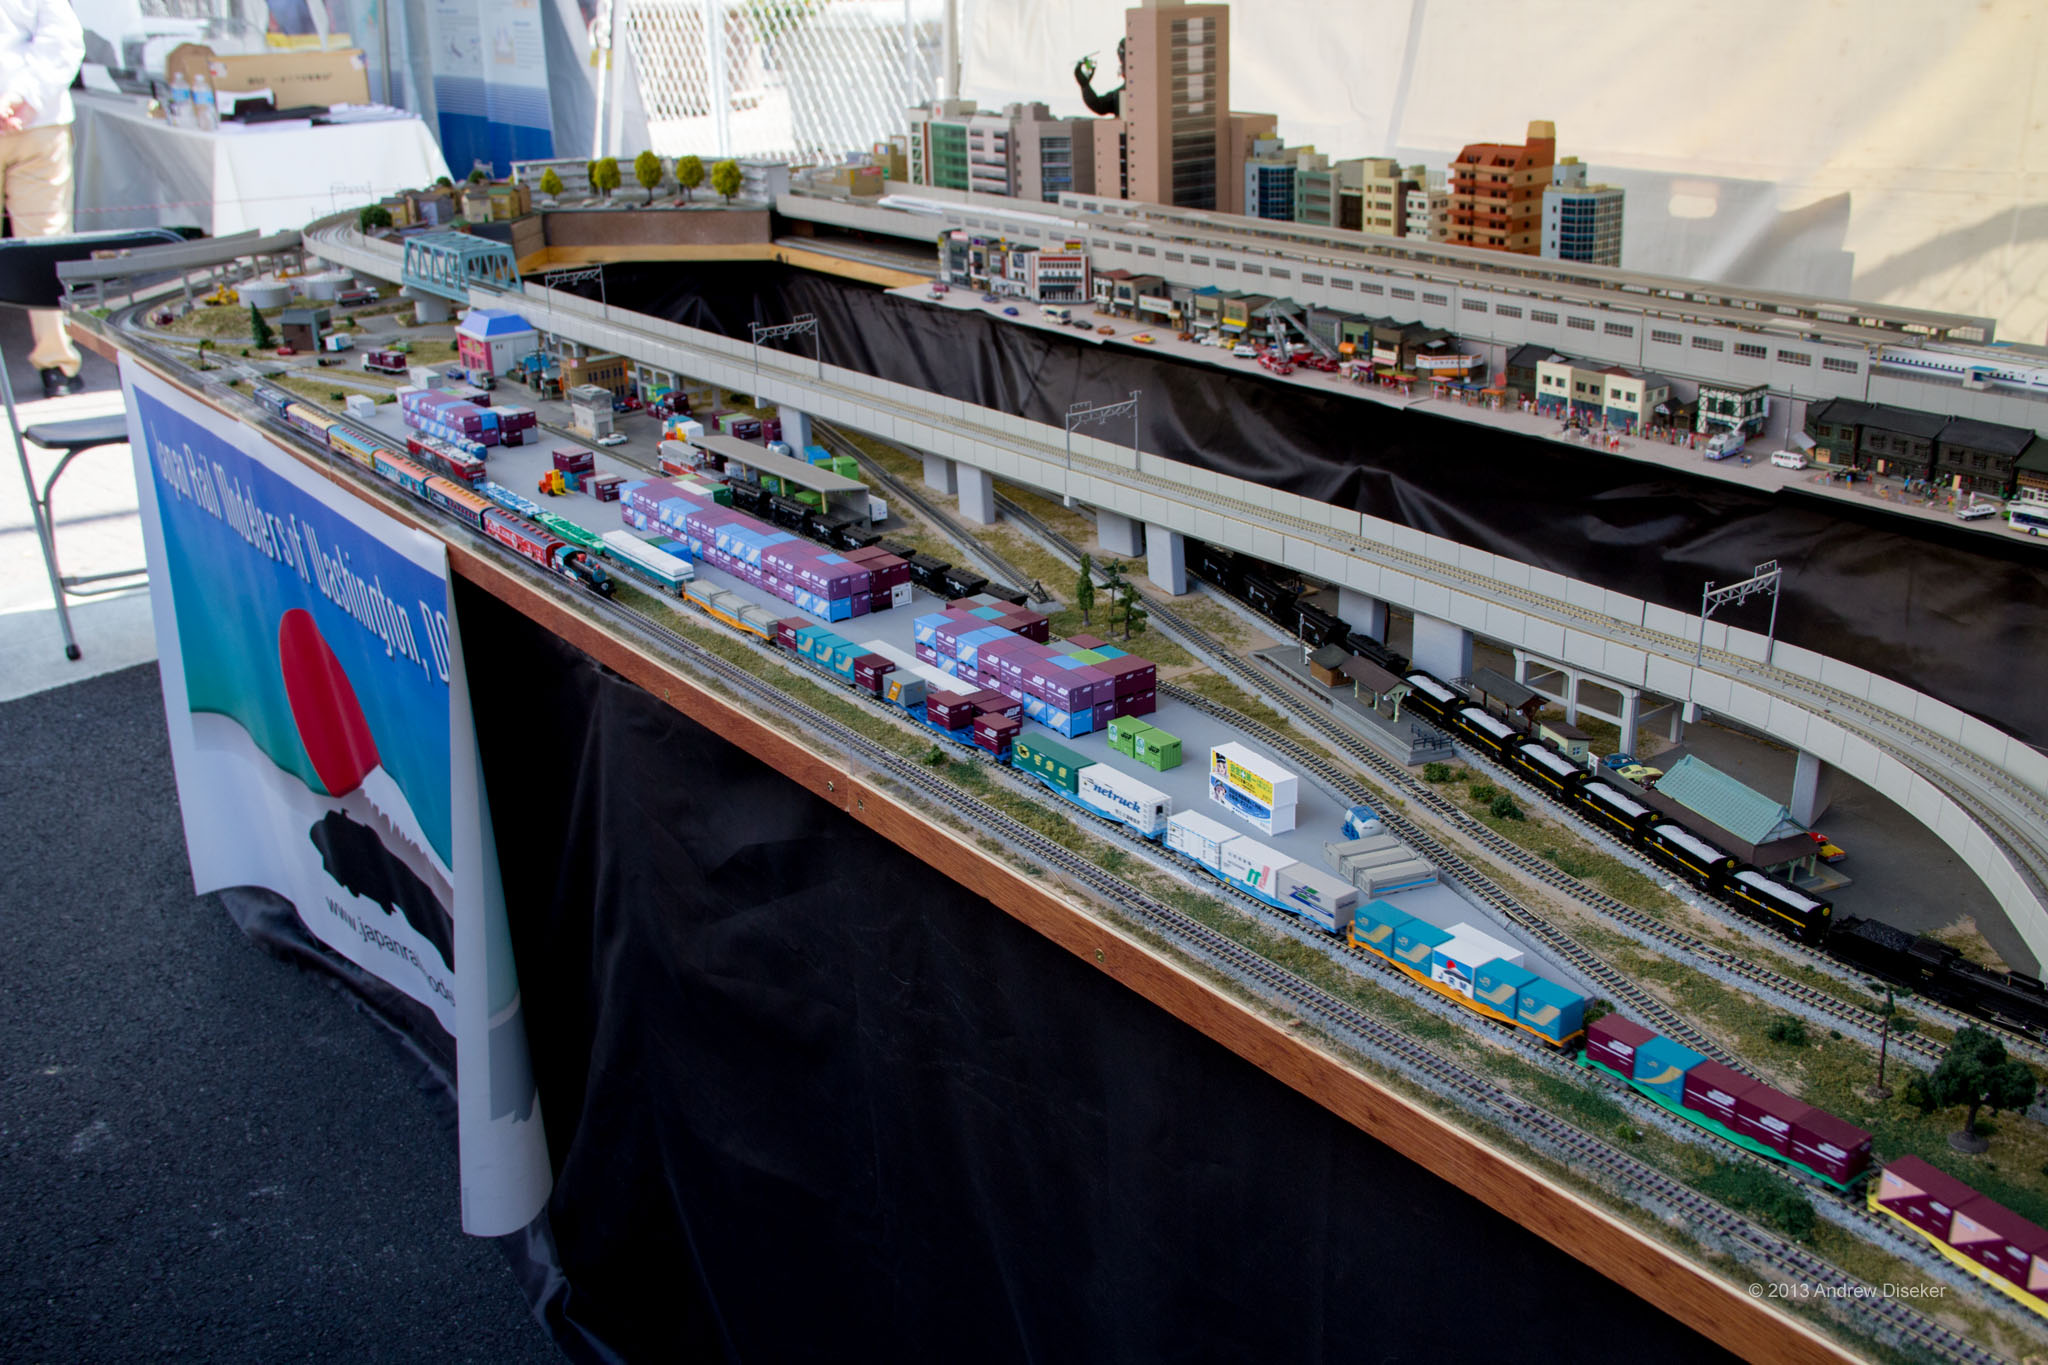 DC Japan Model Railroad Club